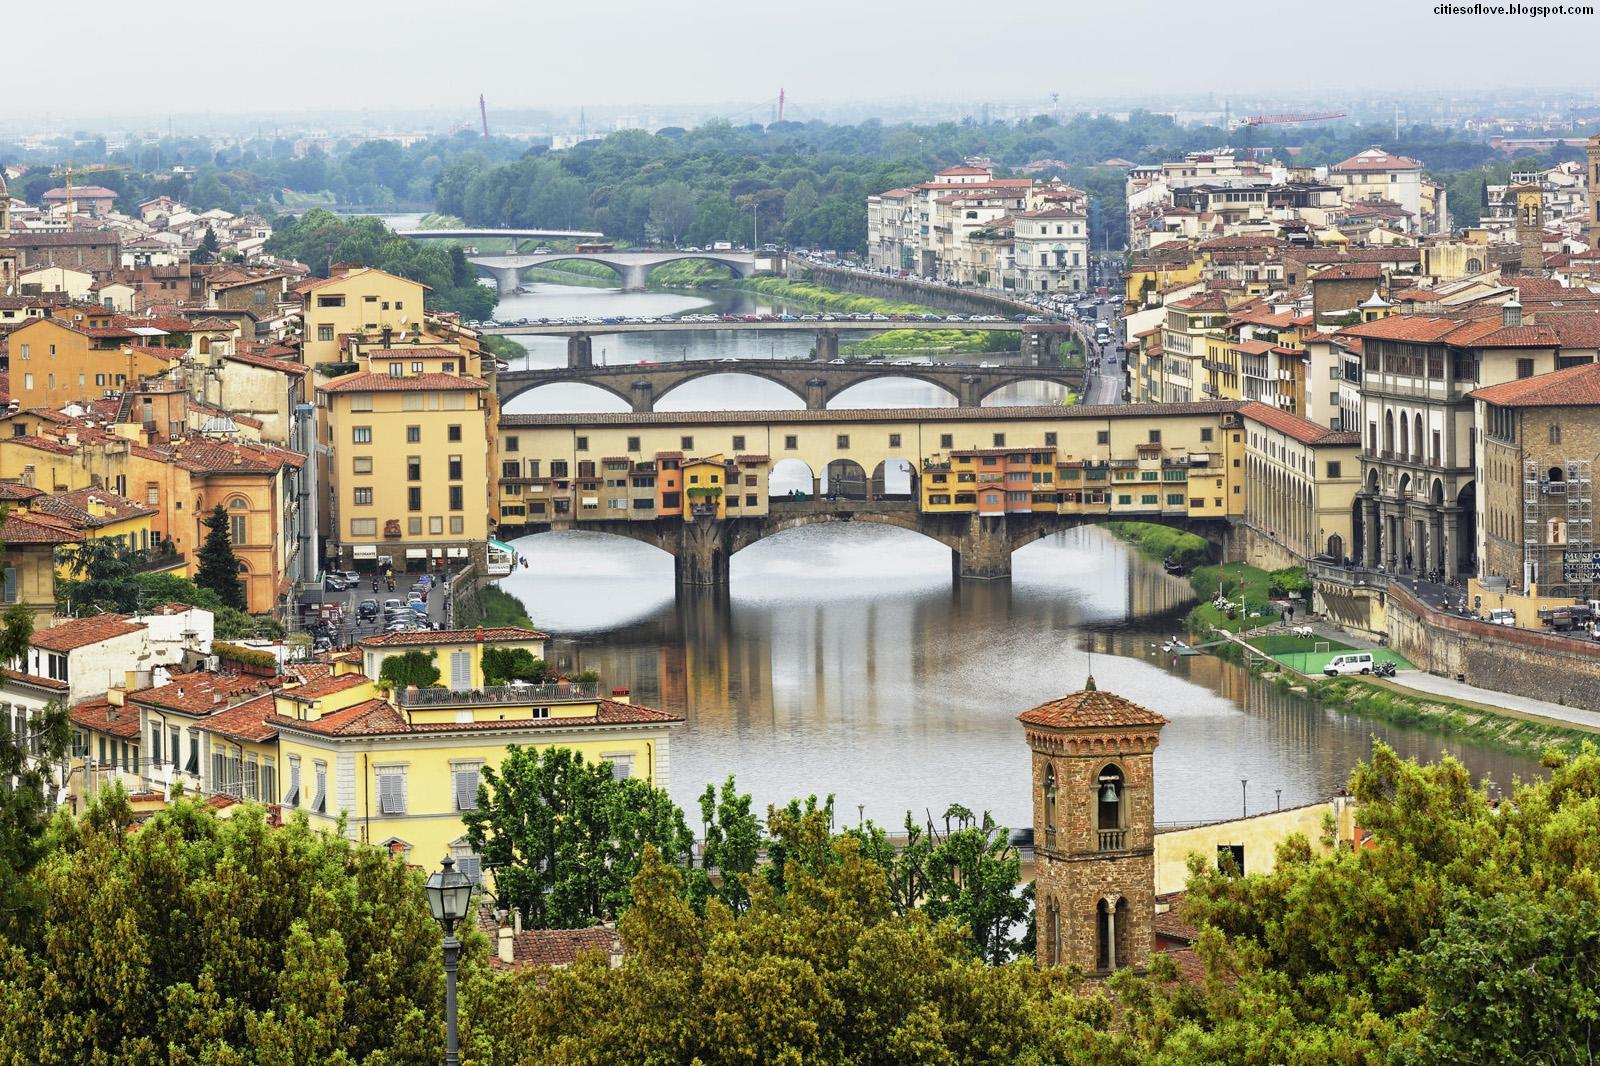 Ponte_Vecchio_Arno_River_in_Florence_Italy_daytime.jpg